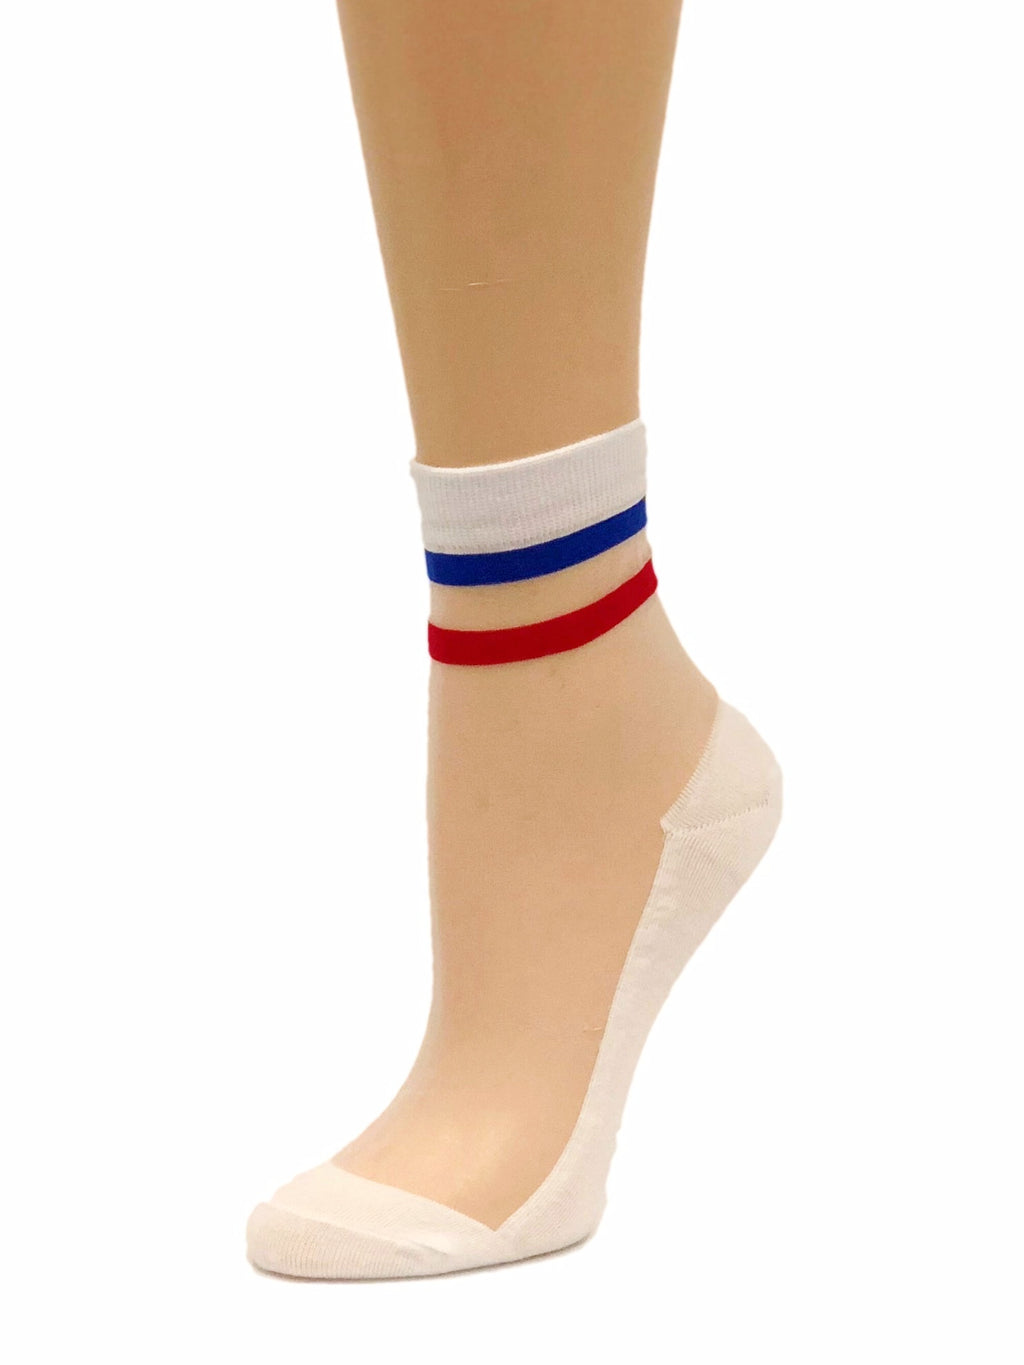 Striped Red Blue Sheer Socks - Global Trendz Fashion®